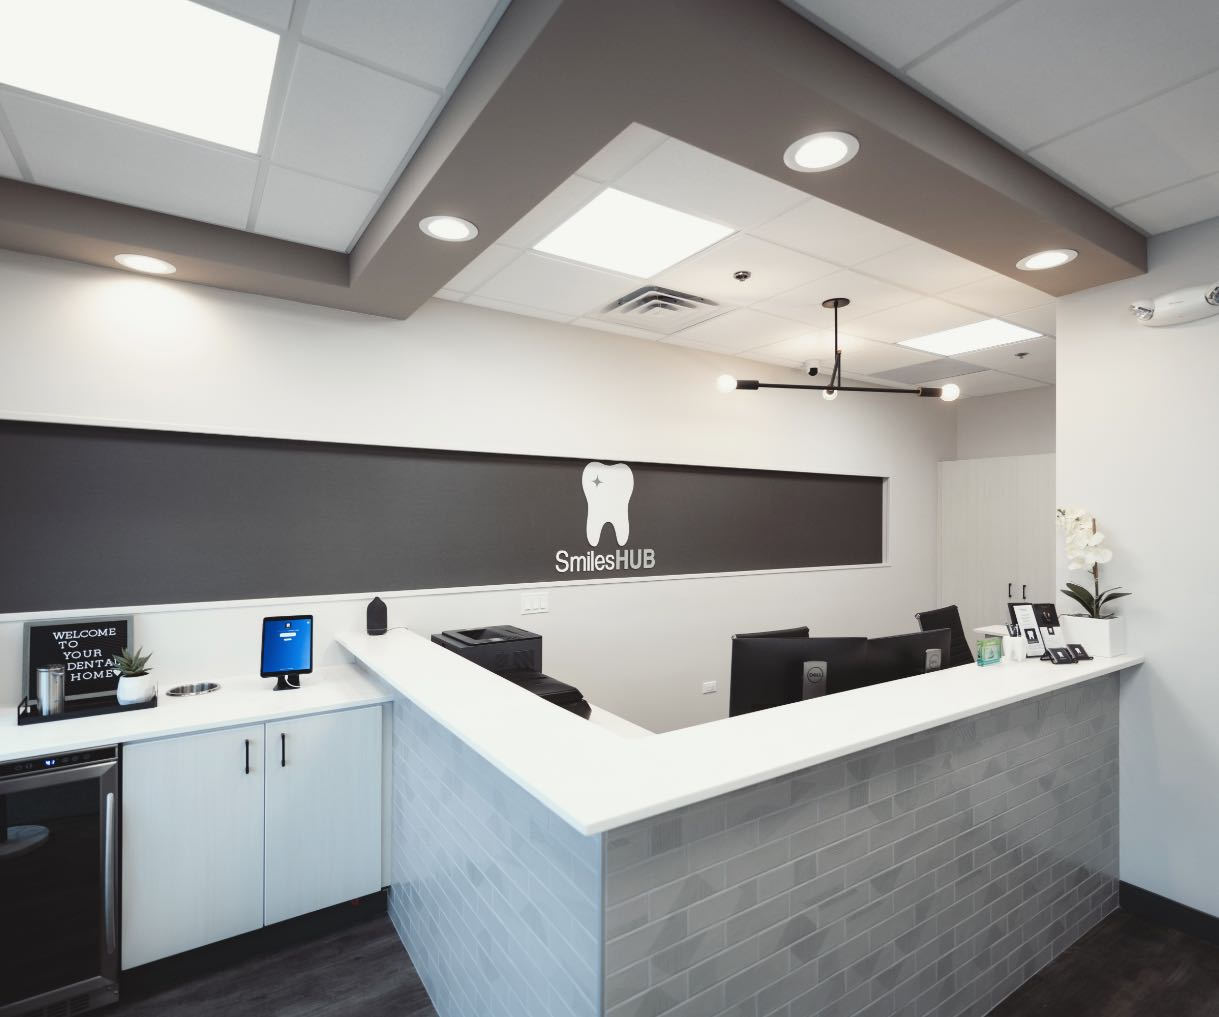 Photo of the SmilesHUB front desk space